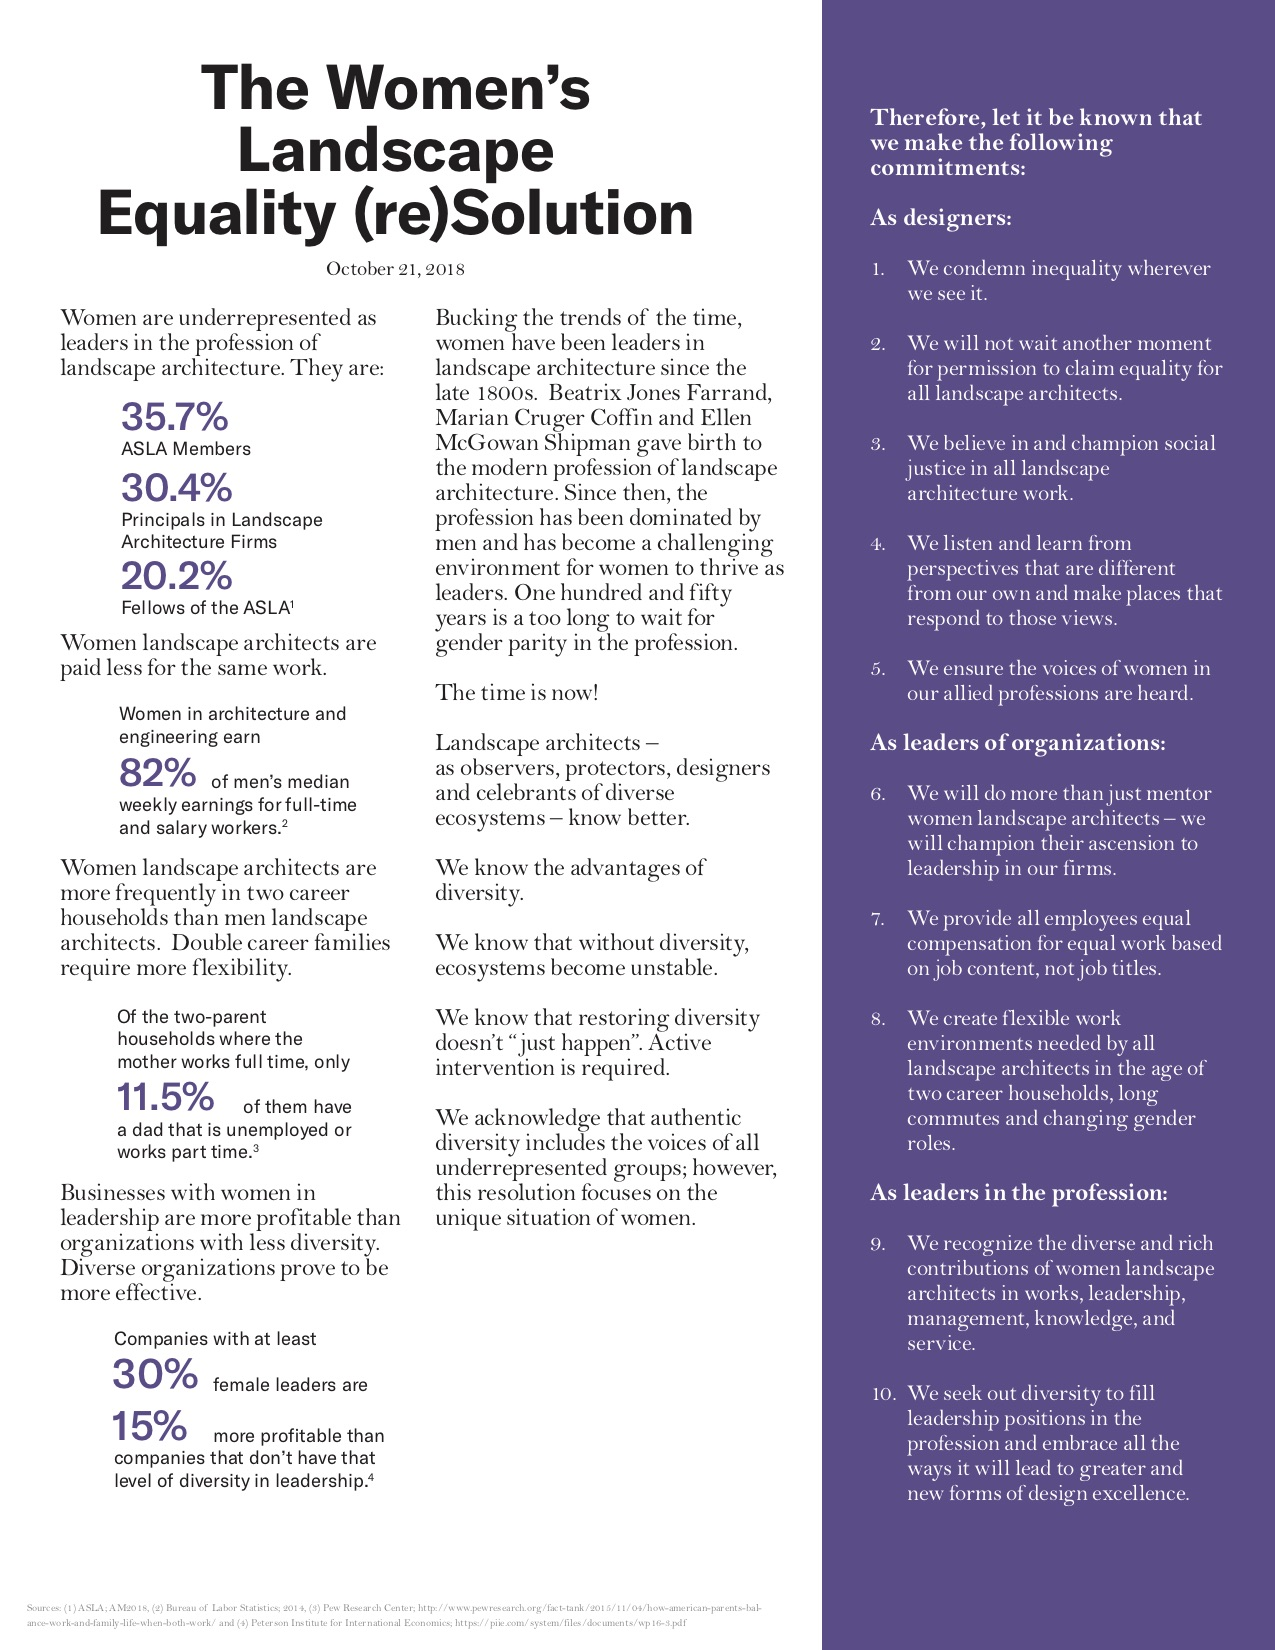 The Women's Landscape Equality (re)Solution - Cadence : Cadence